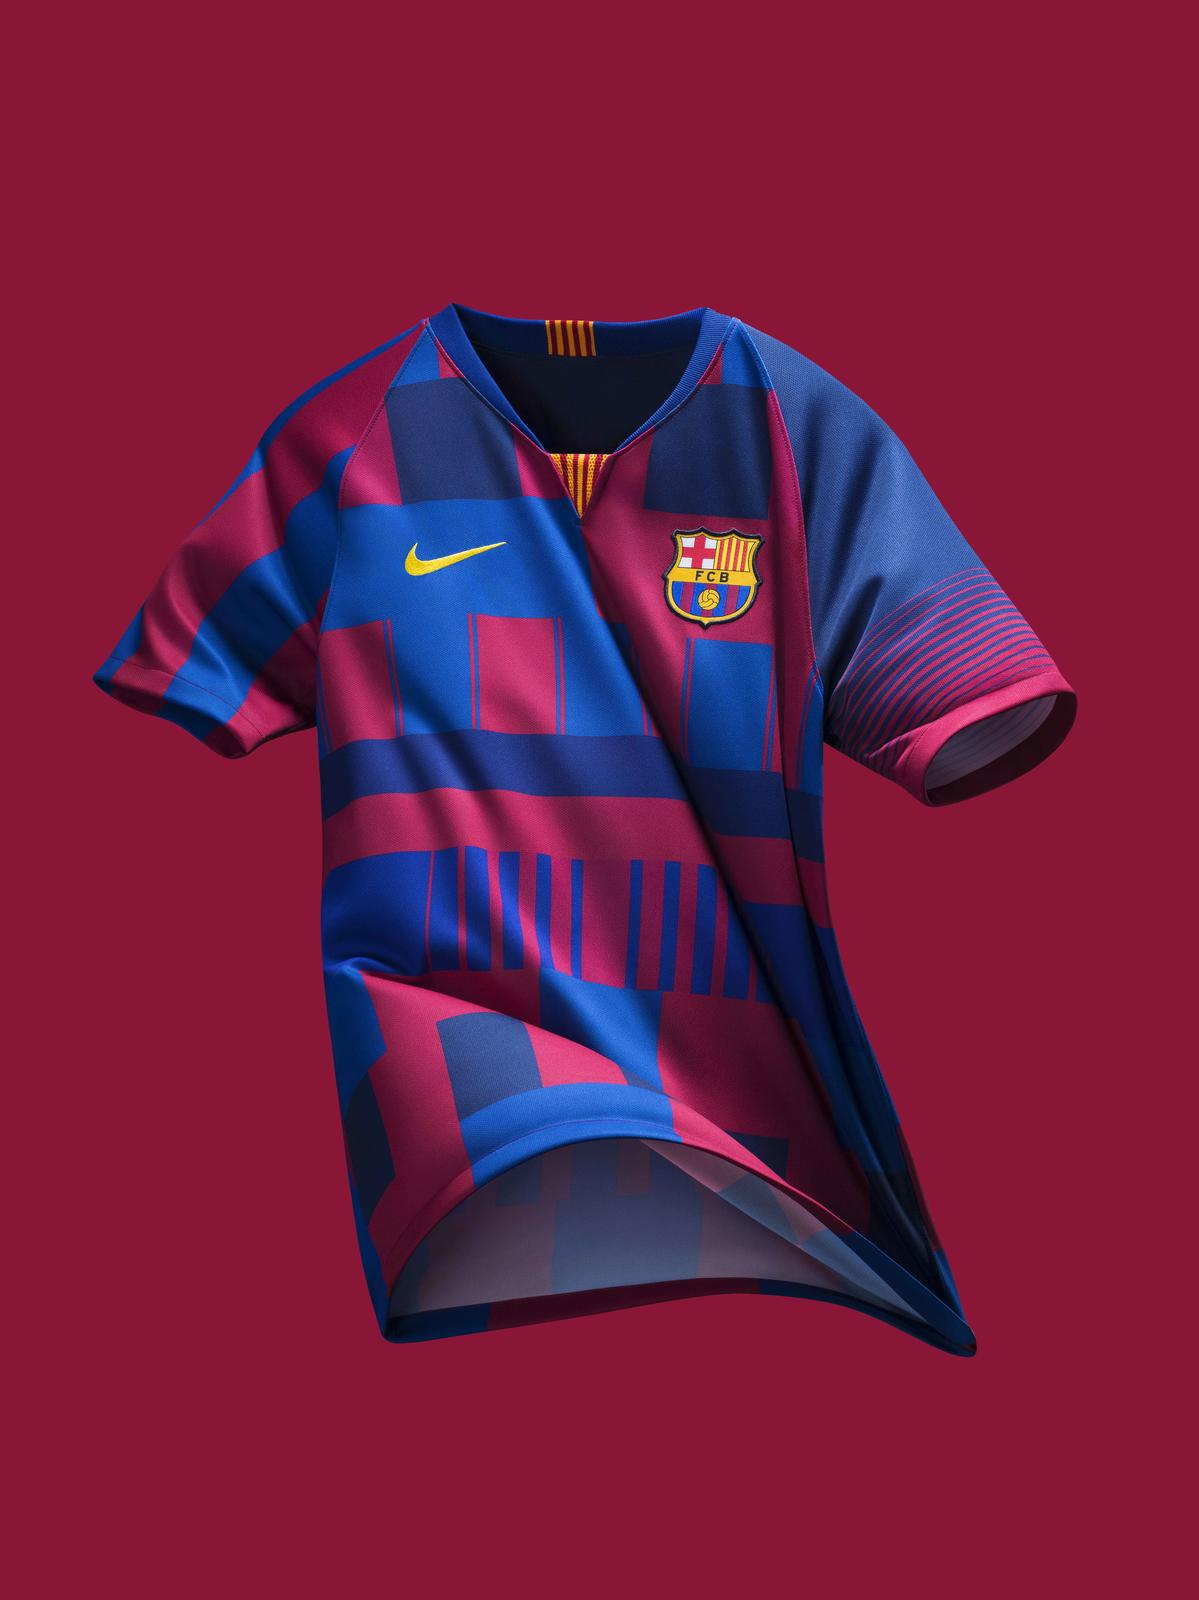 5f1b0f37b8c FC Barcelona What The 20th Anniversary Jersey - Nike News